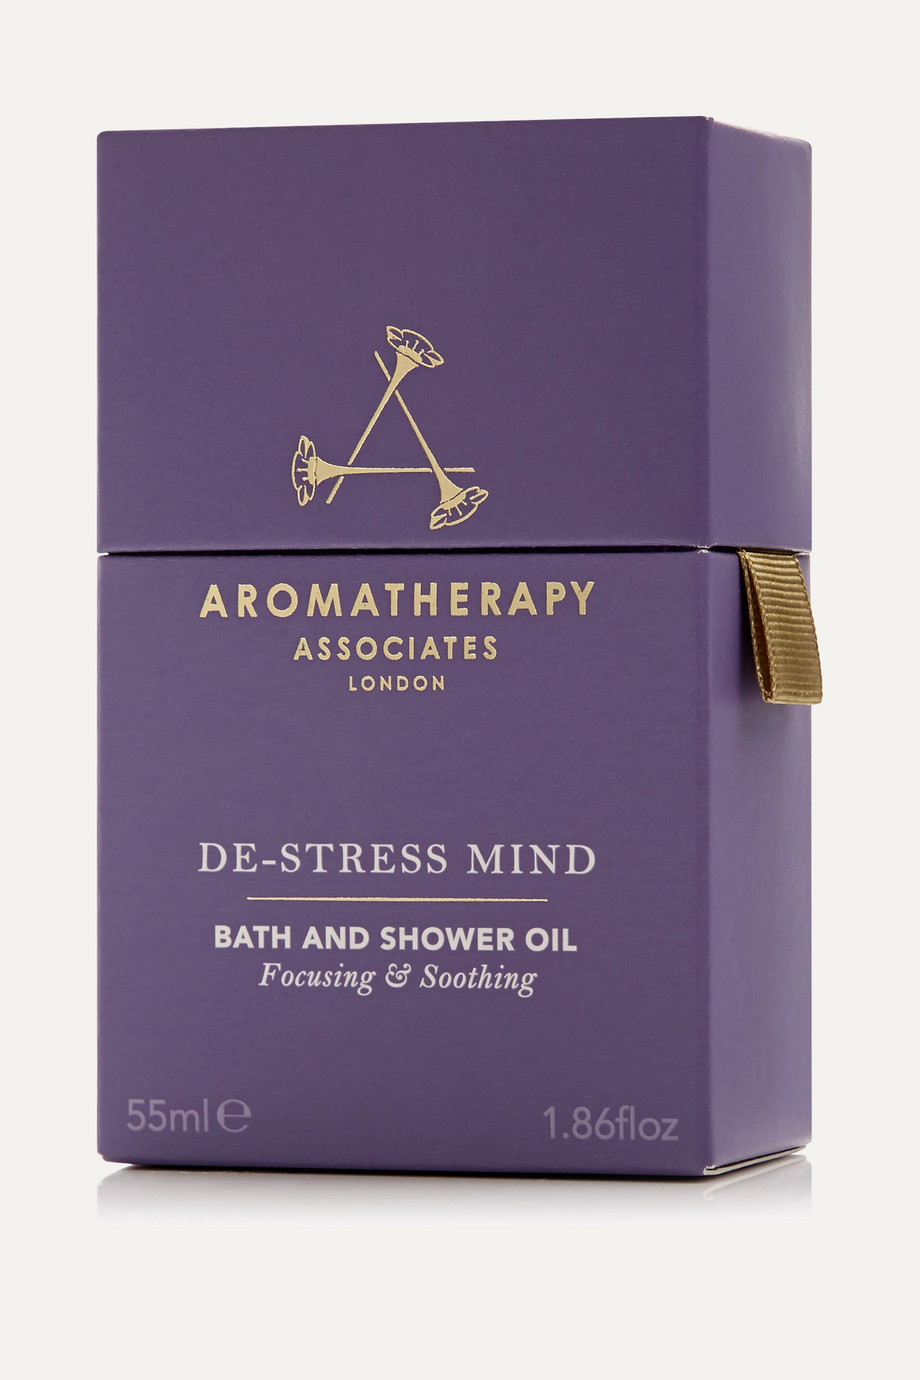 Aromatherapy Associates De-Stress Mind Bath and Shower Oil, 55ml